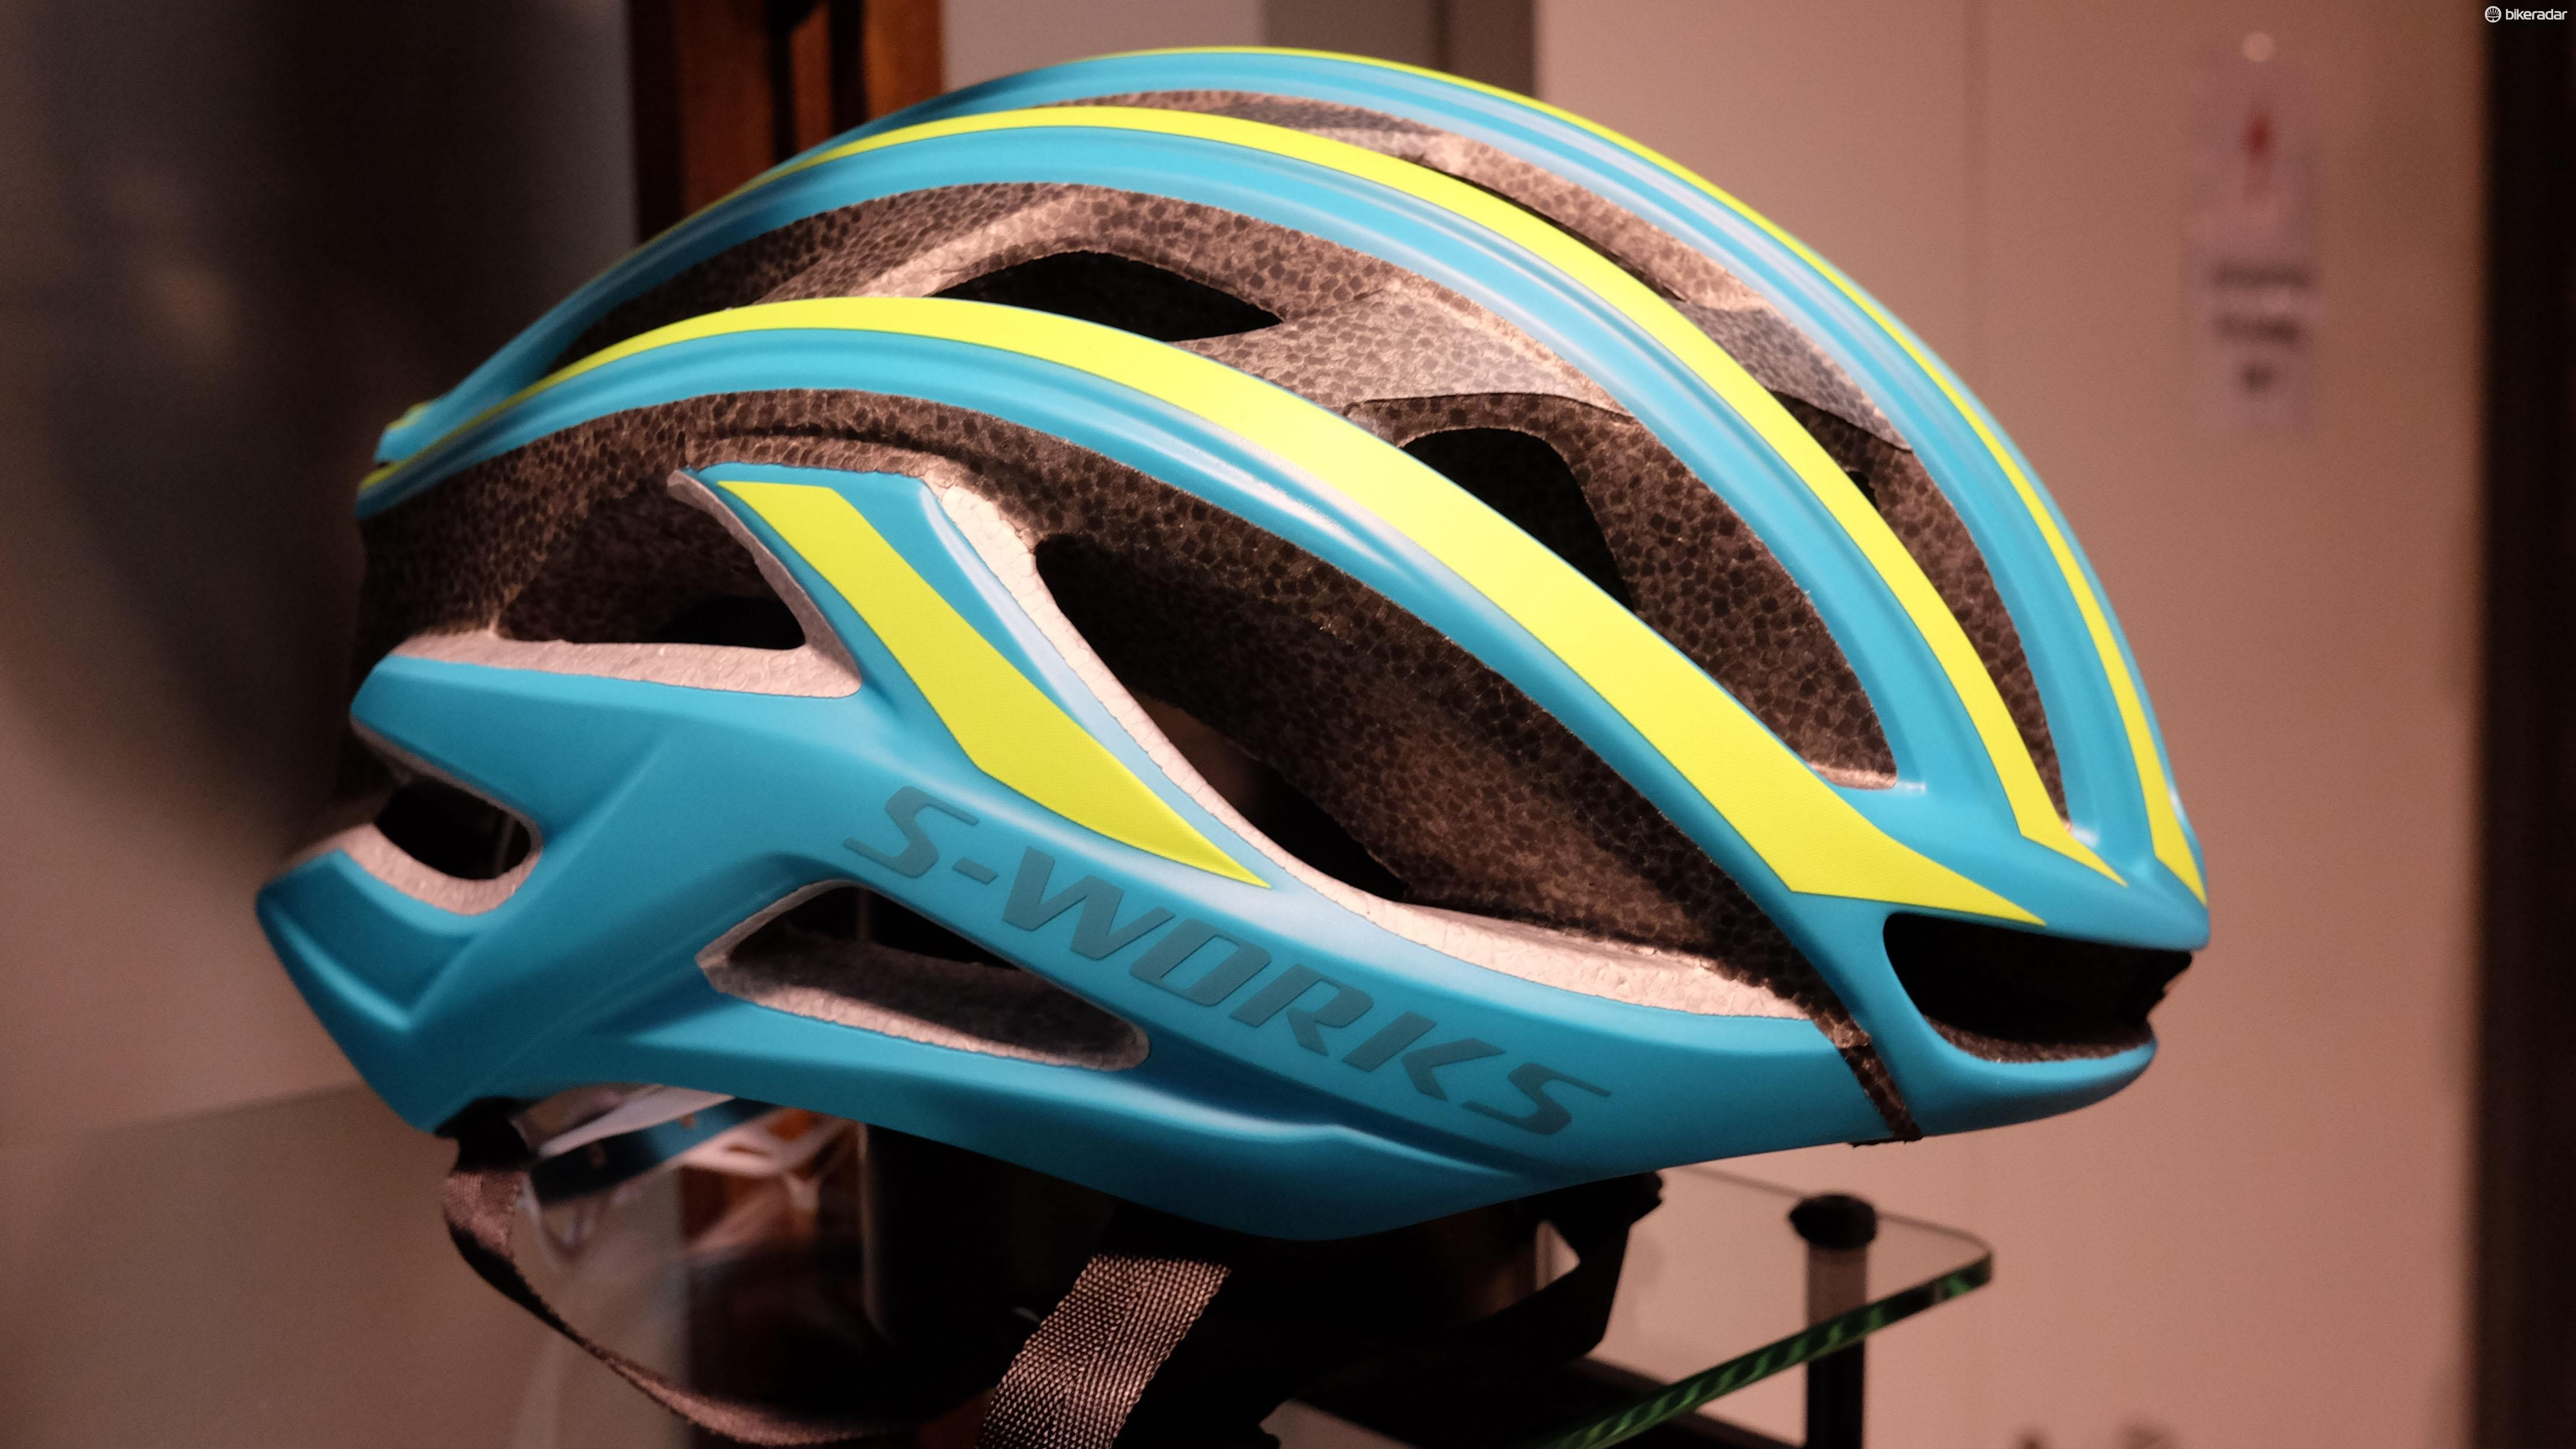 The new Prevail II road helmet has been wind tunnel tested